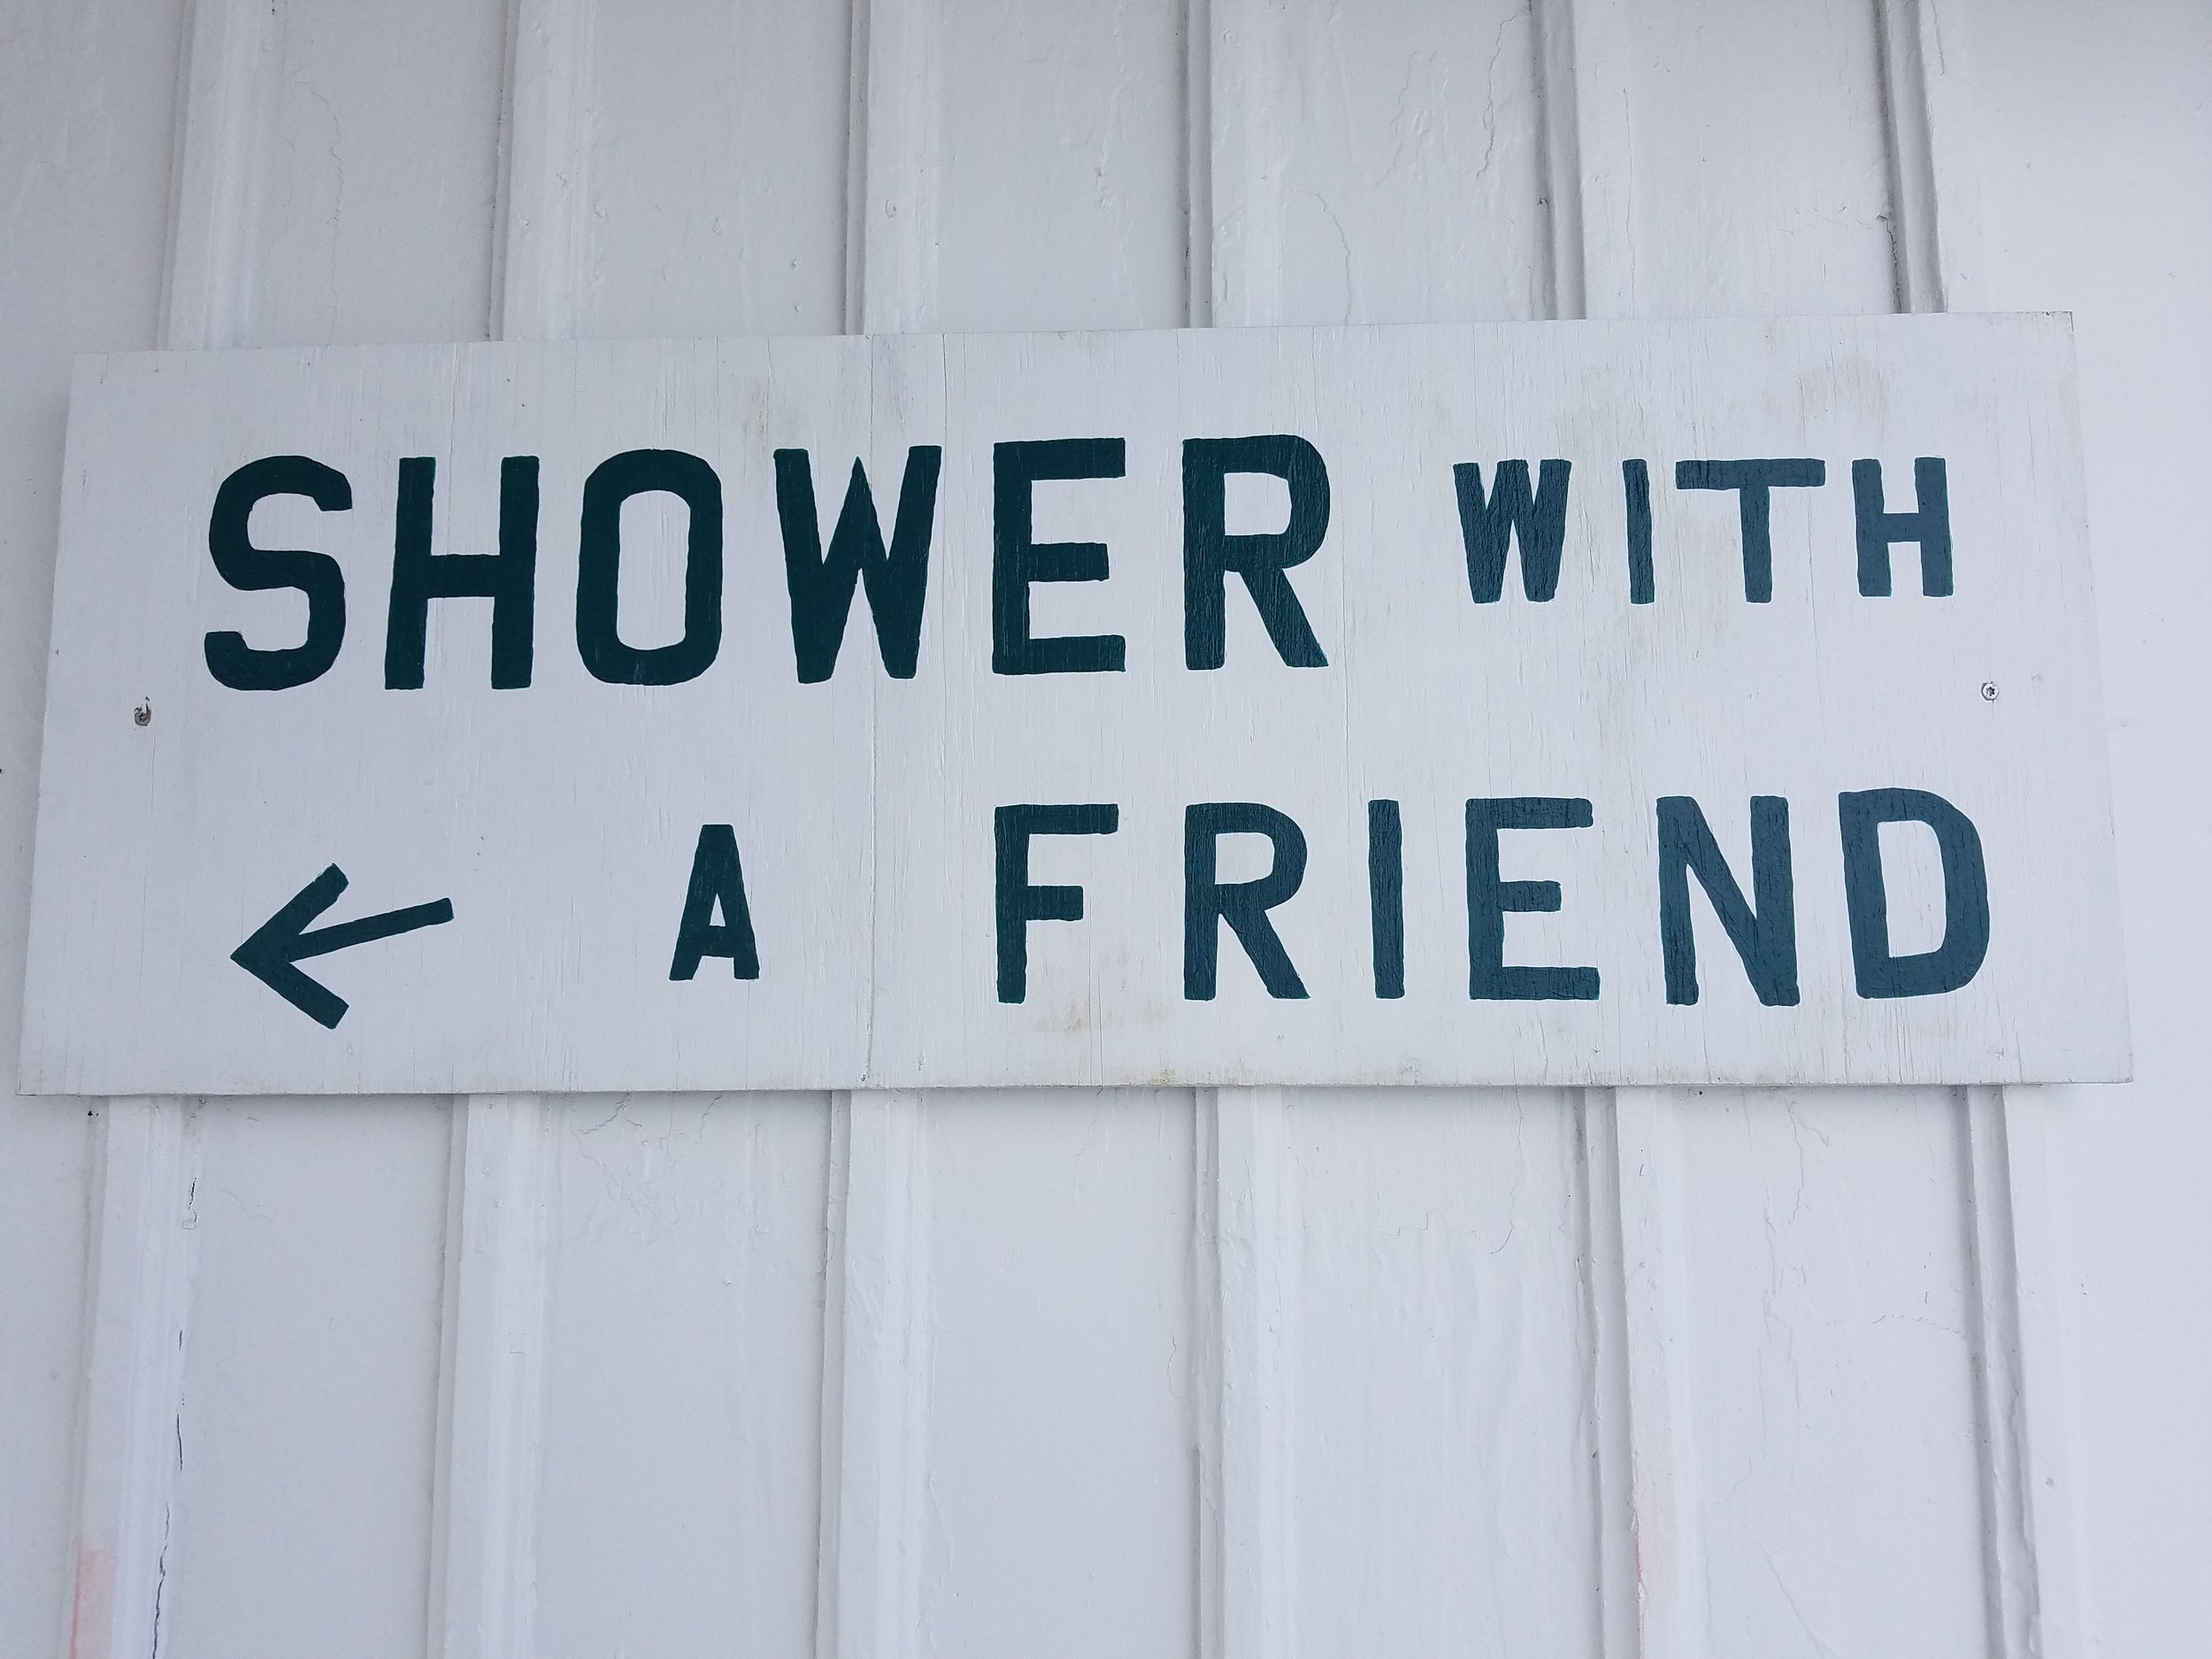 Shower with a friend - Cabbage Key